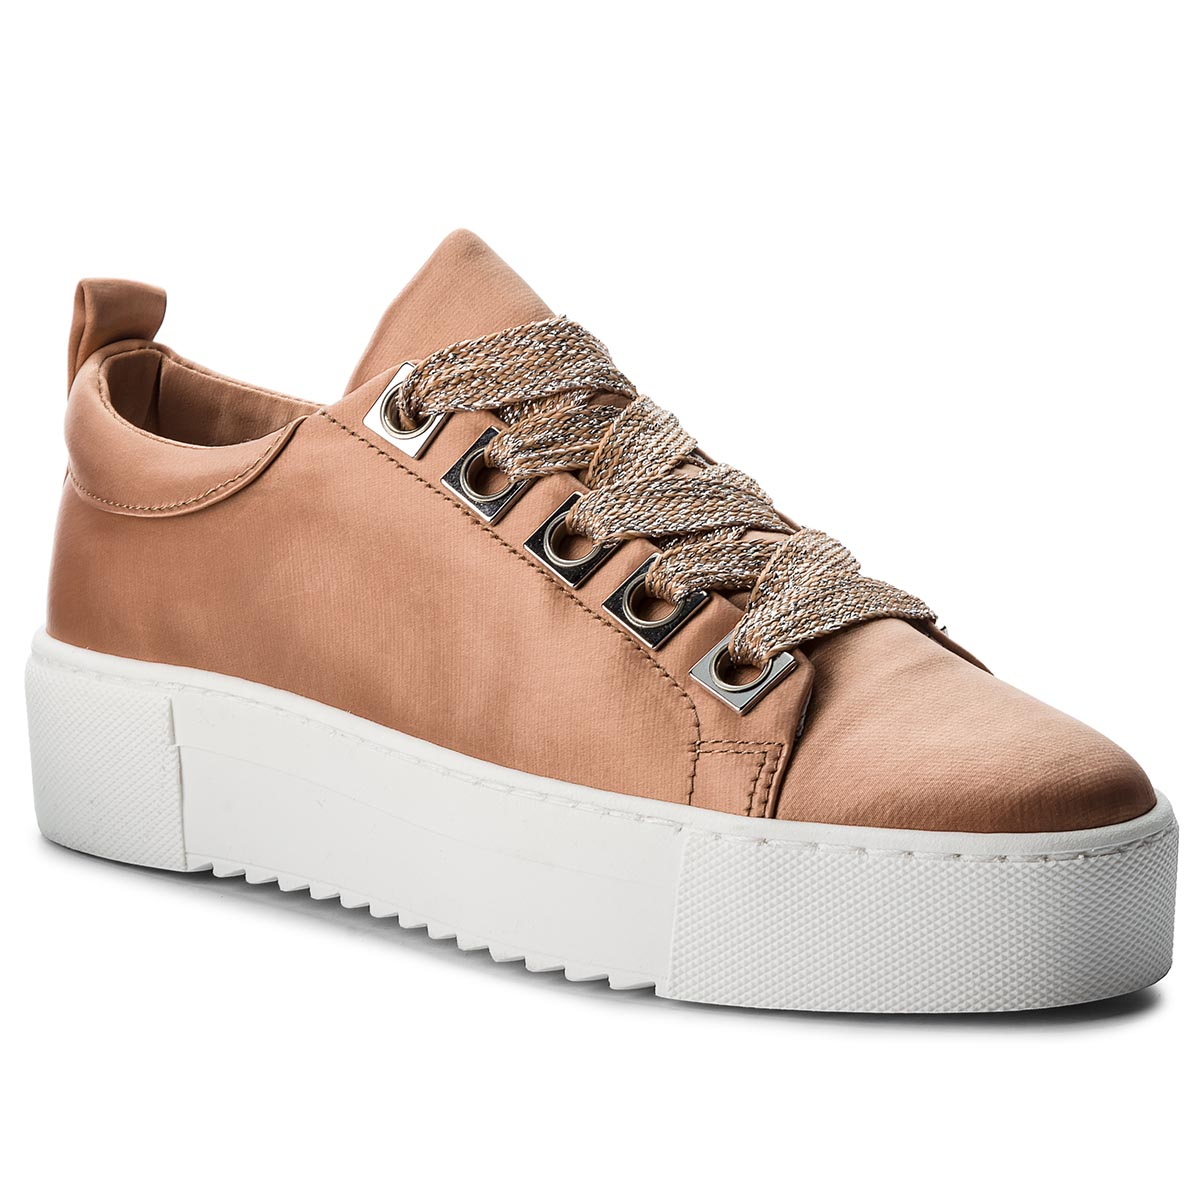 1bfa5372d85ab Sneakersy BRONX - 66121-A New Nude 2208 - Glami.sk